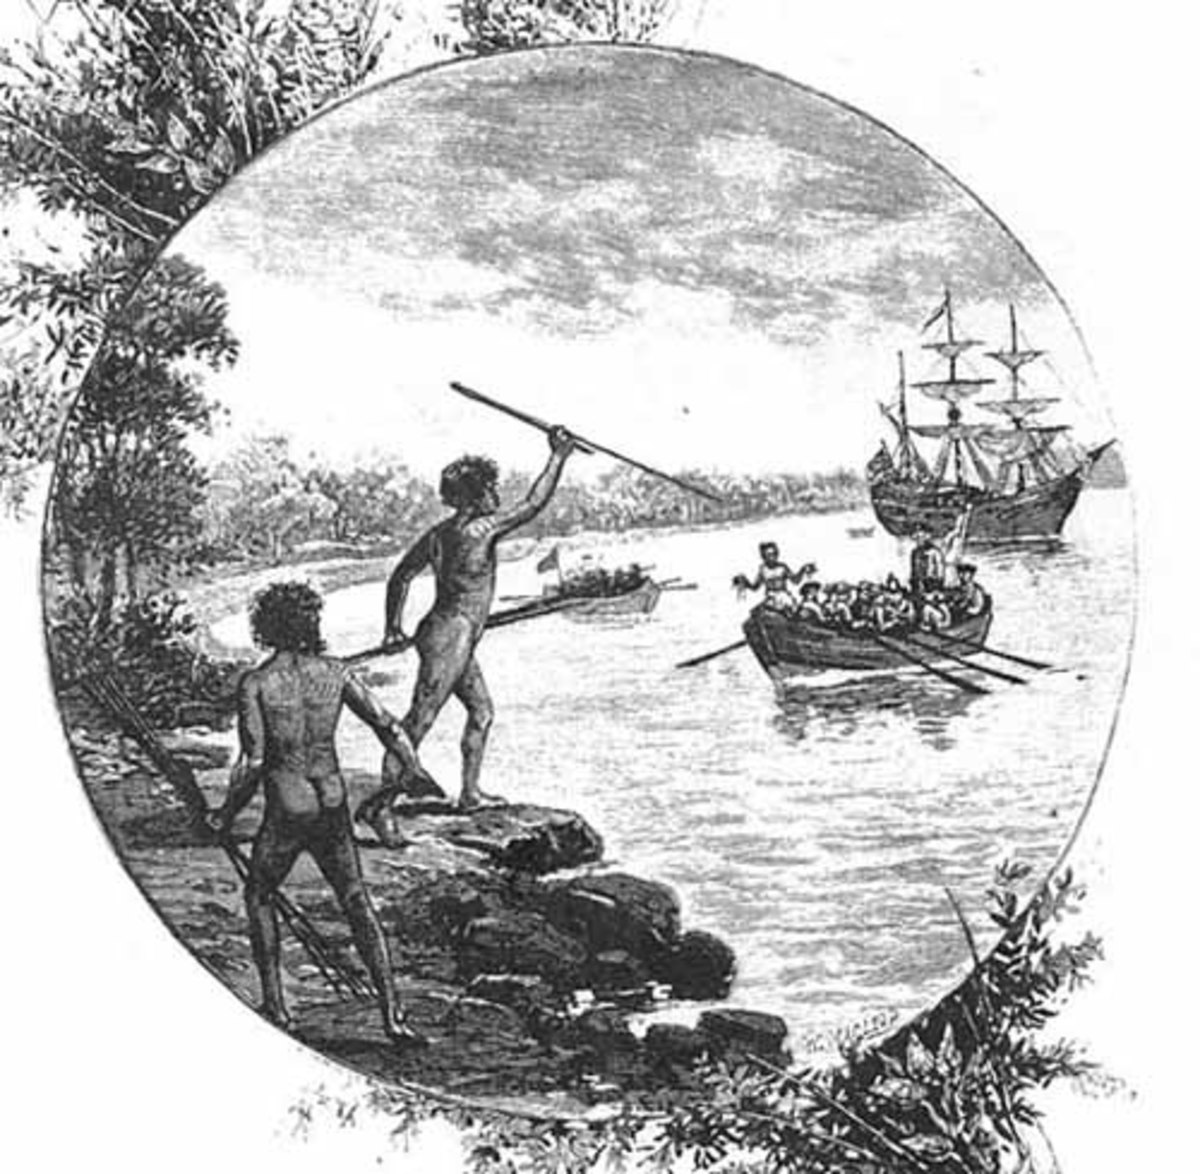 Aboriginals Watch The First Fleet arrive